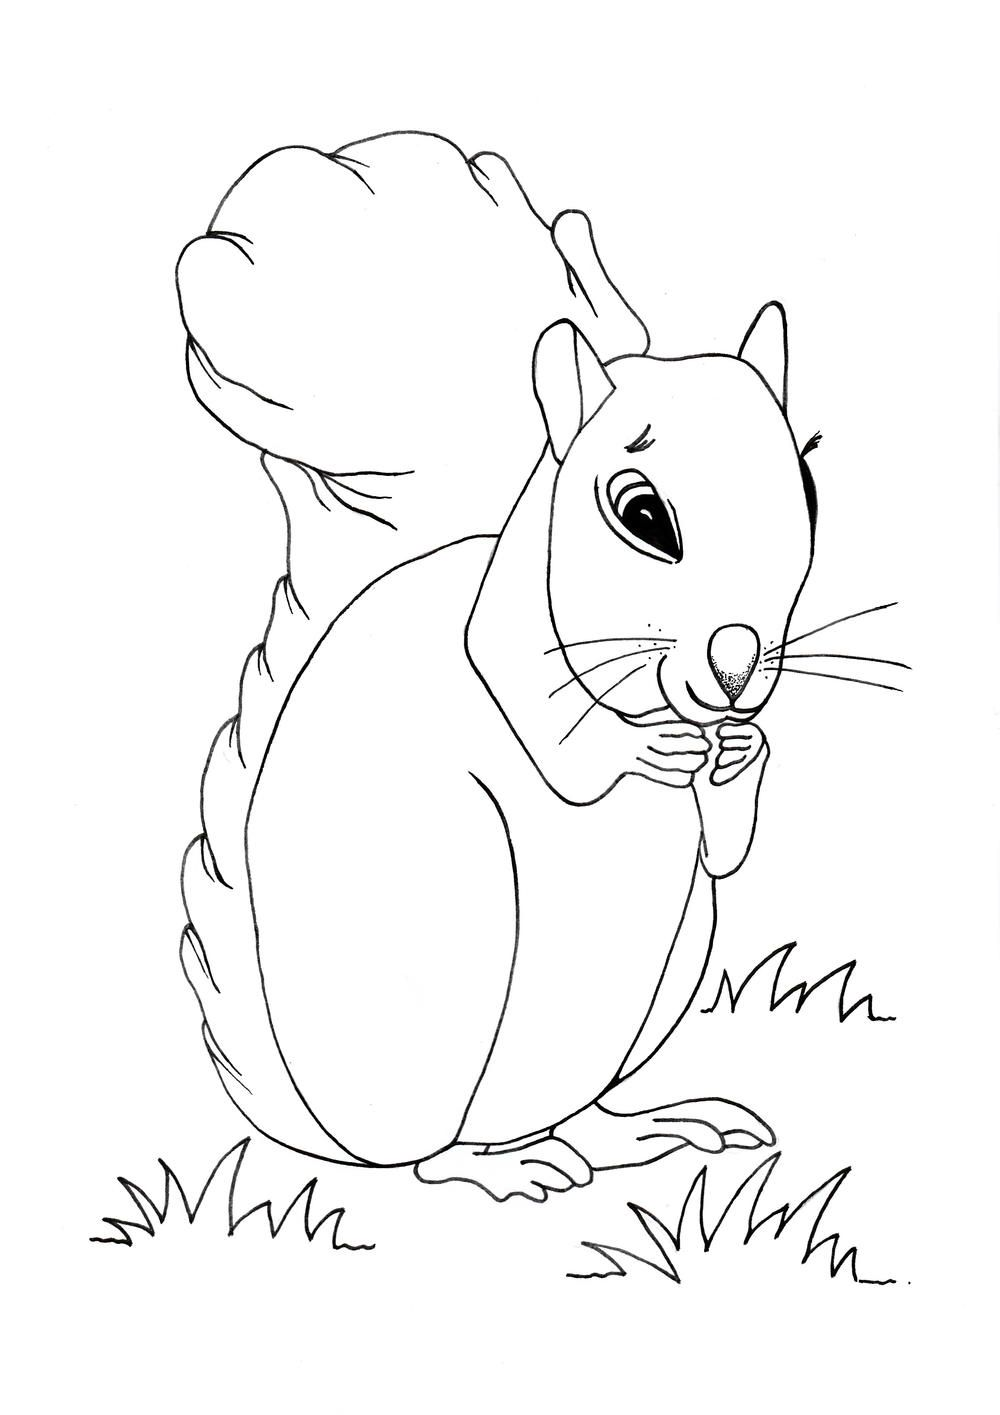 Cute Squirrel Coloring Page | Pinterest